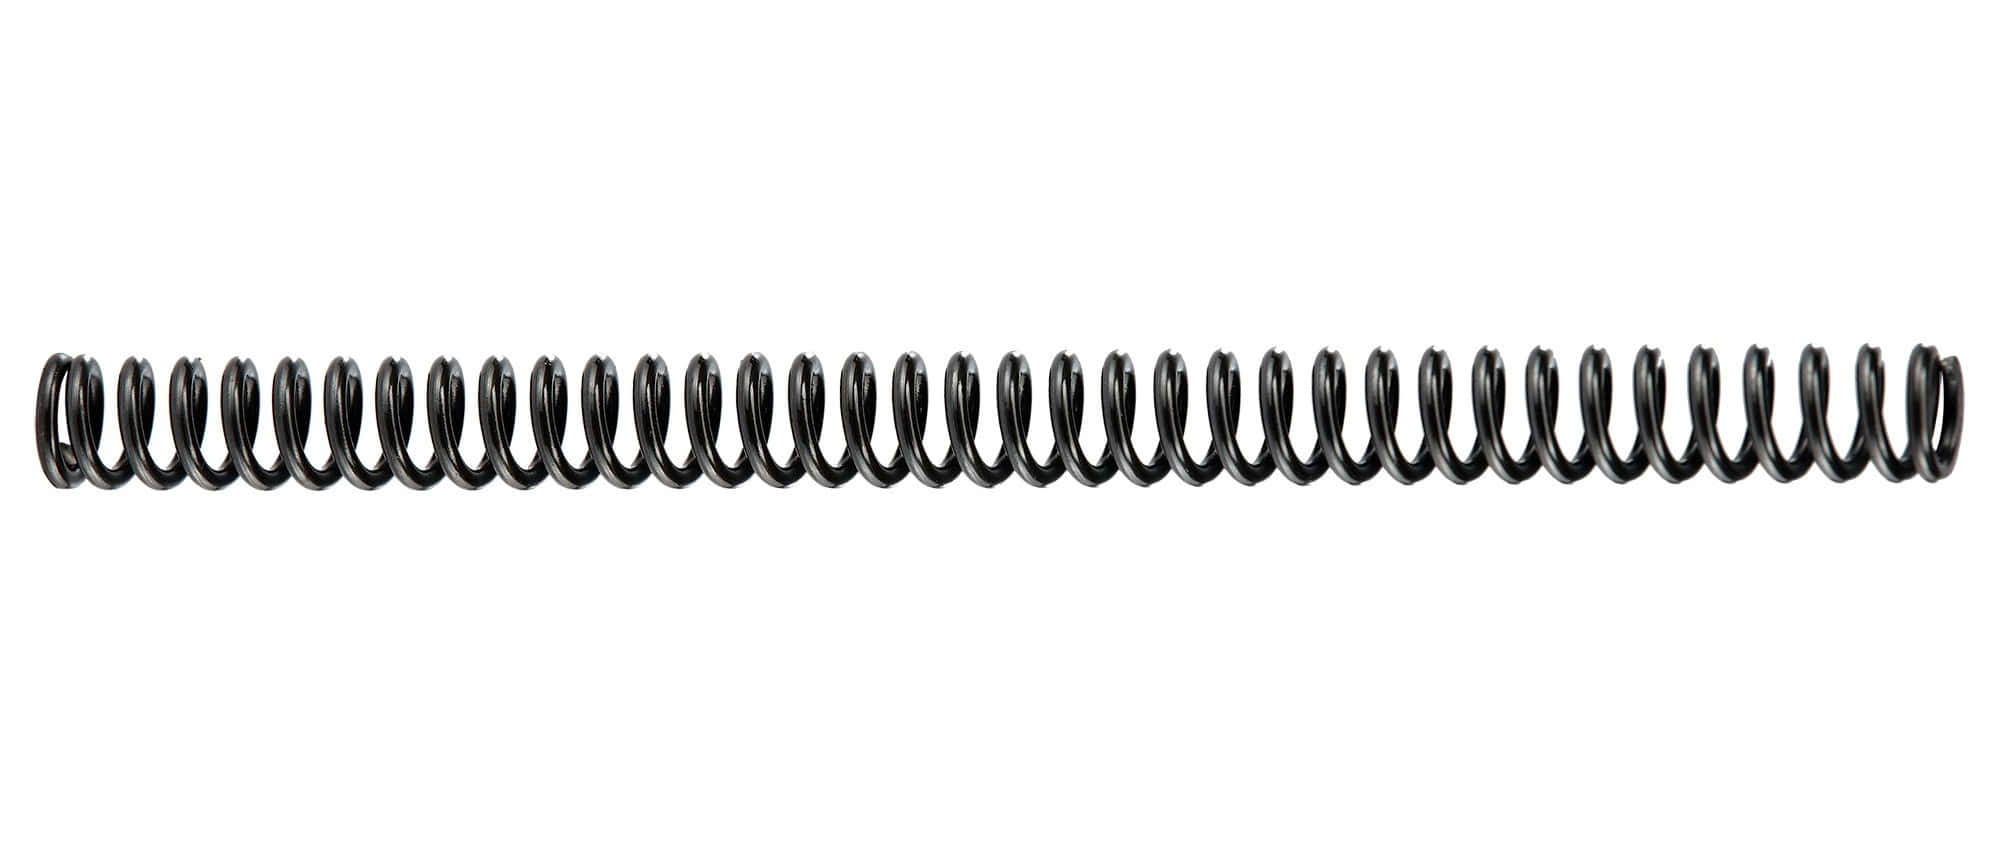 YNAGQUANT6175-01 Power spring for QUANTICO / PENDLETON Air rifle - YNAGQUANT6120